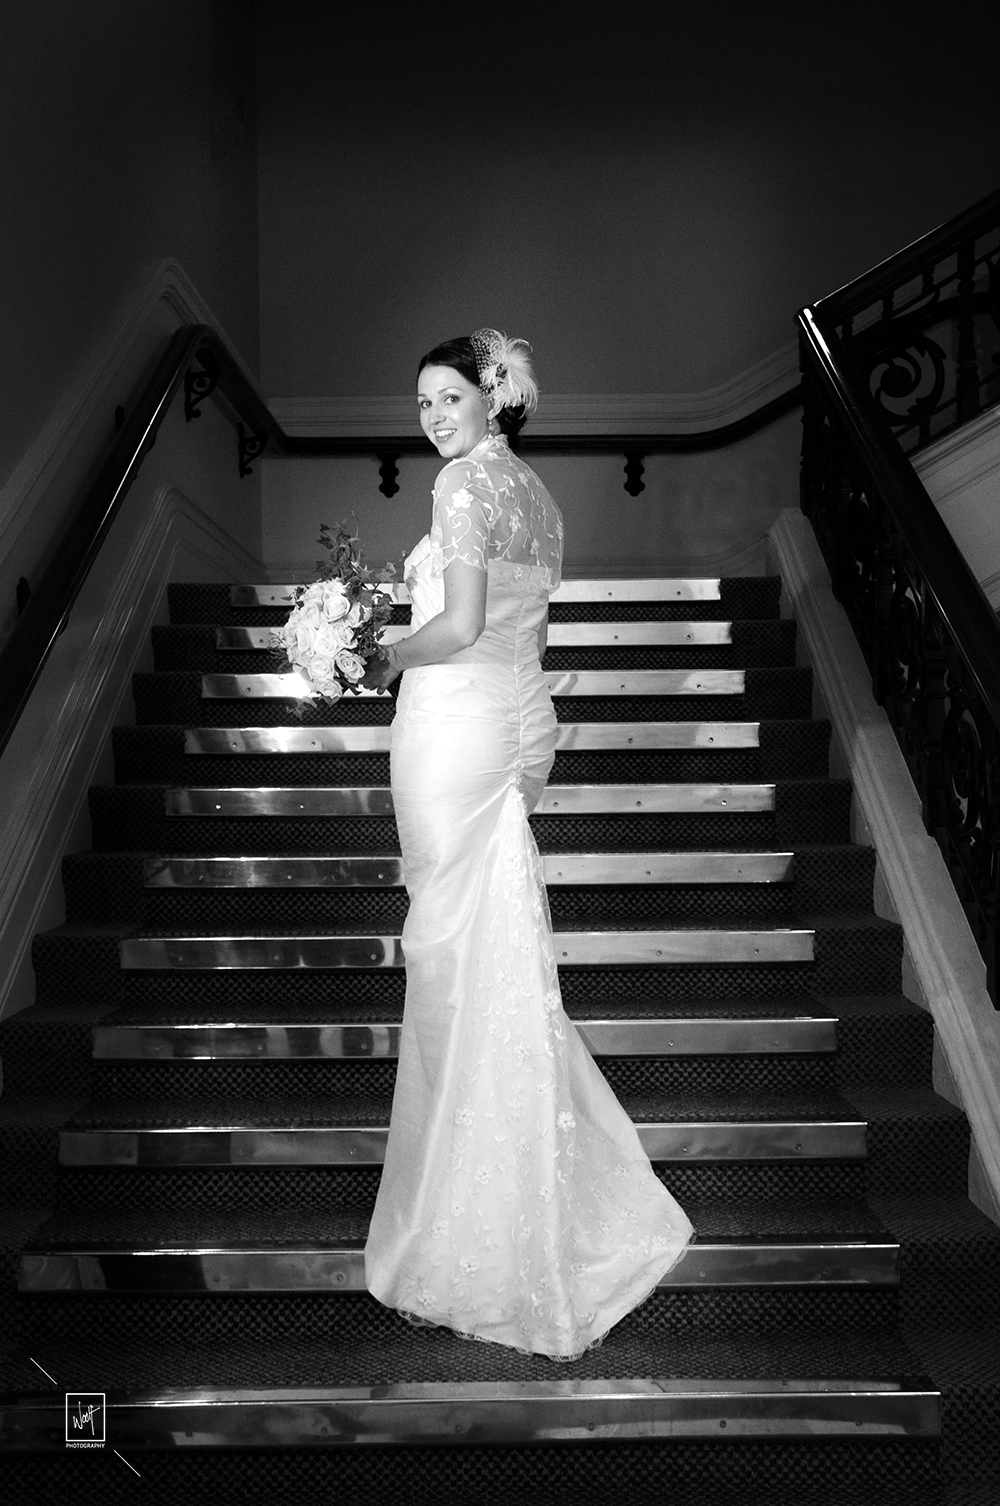 Beautiful bride on stairs